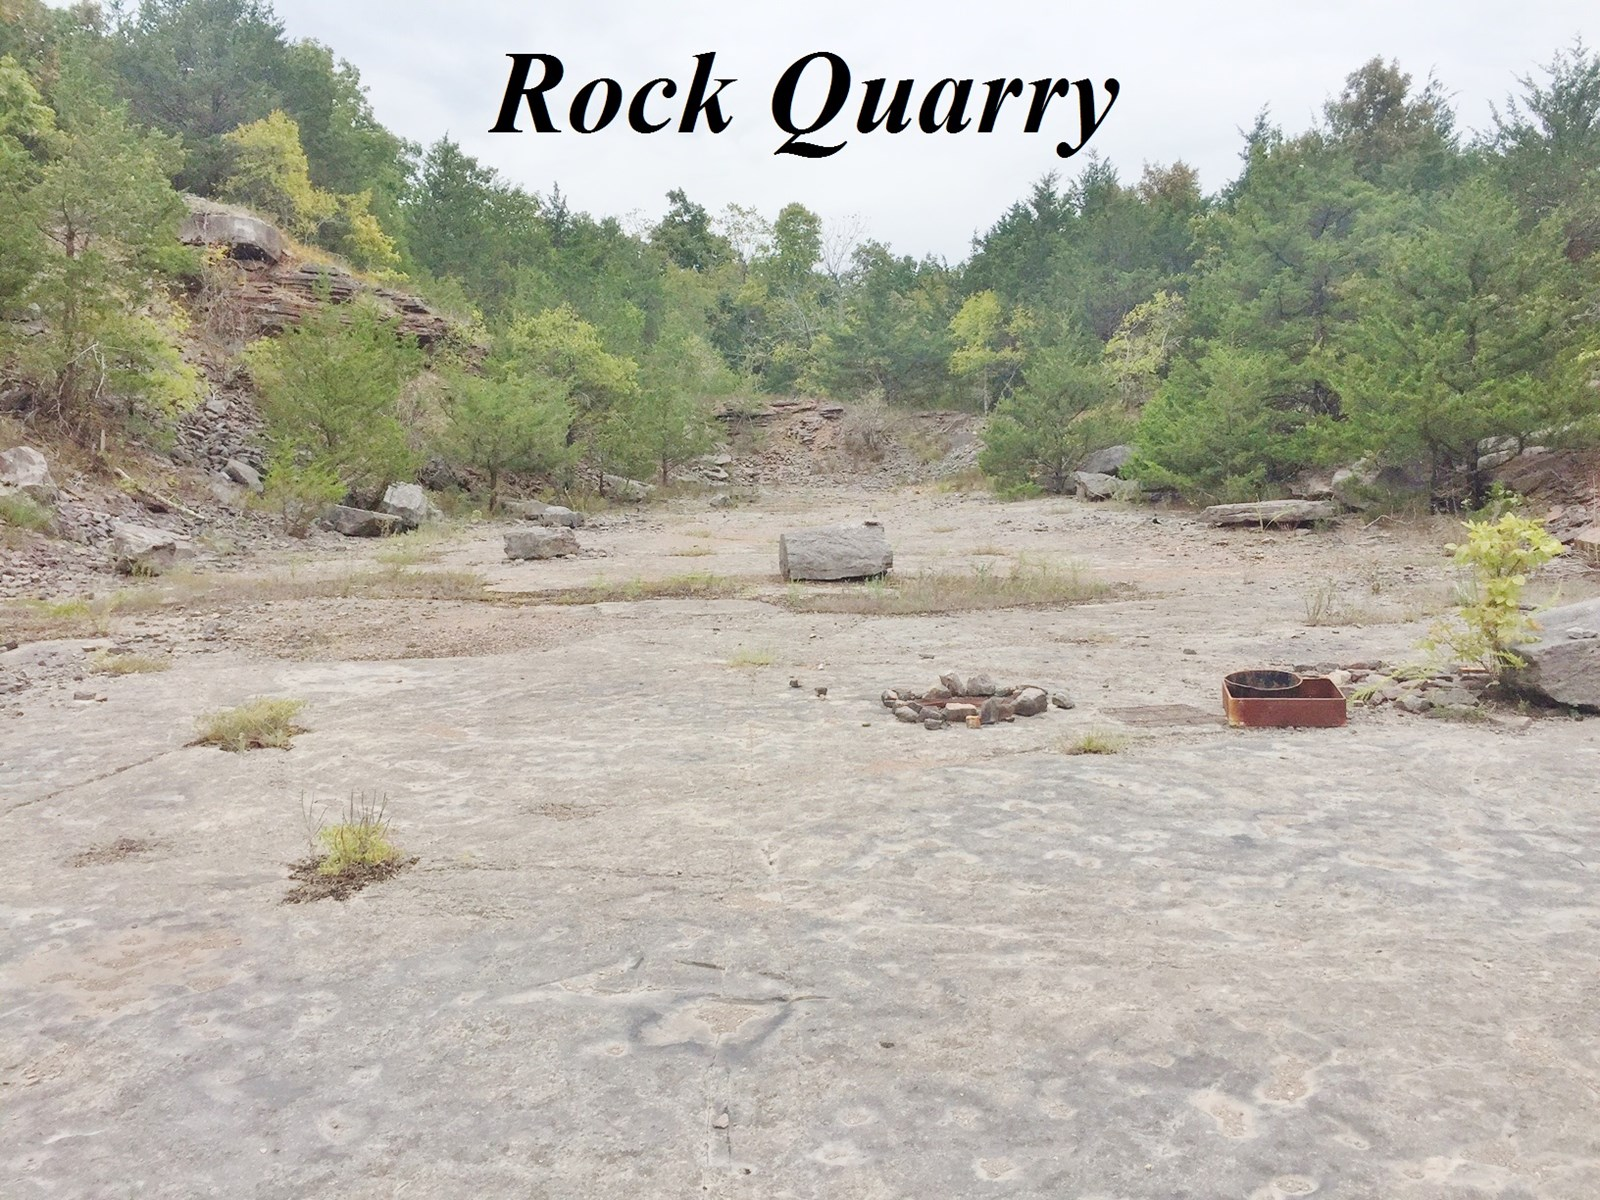 LAND FOR SALE WITH ROCK QUARRY